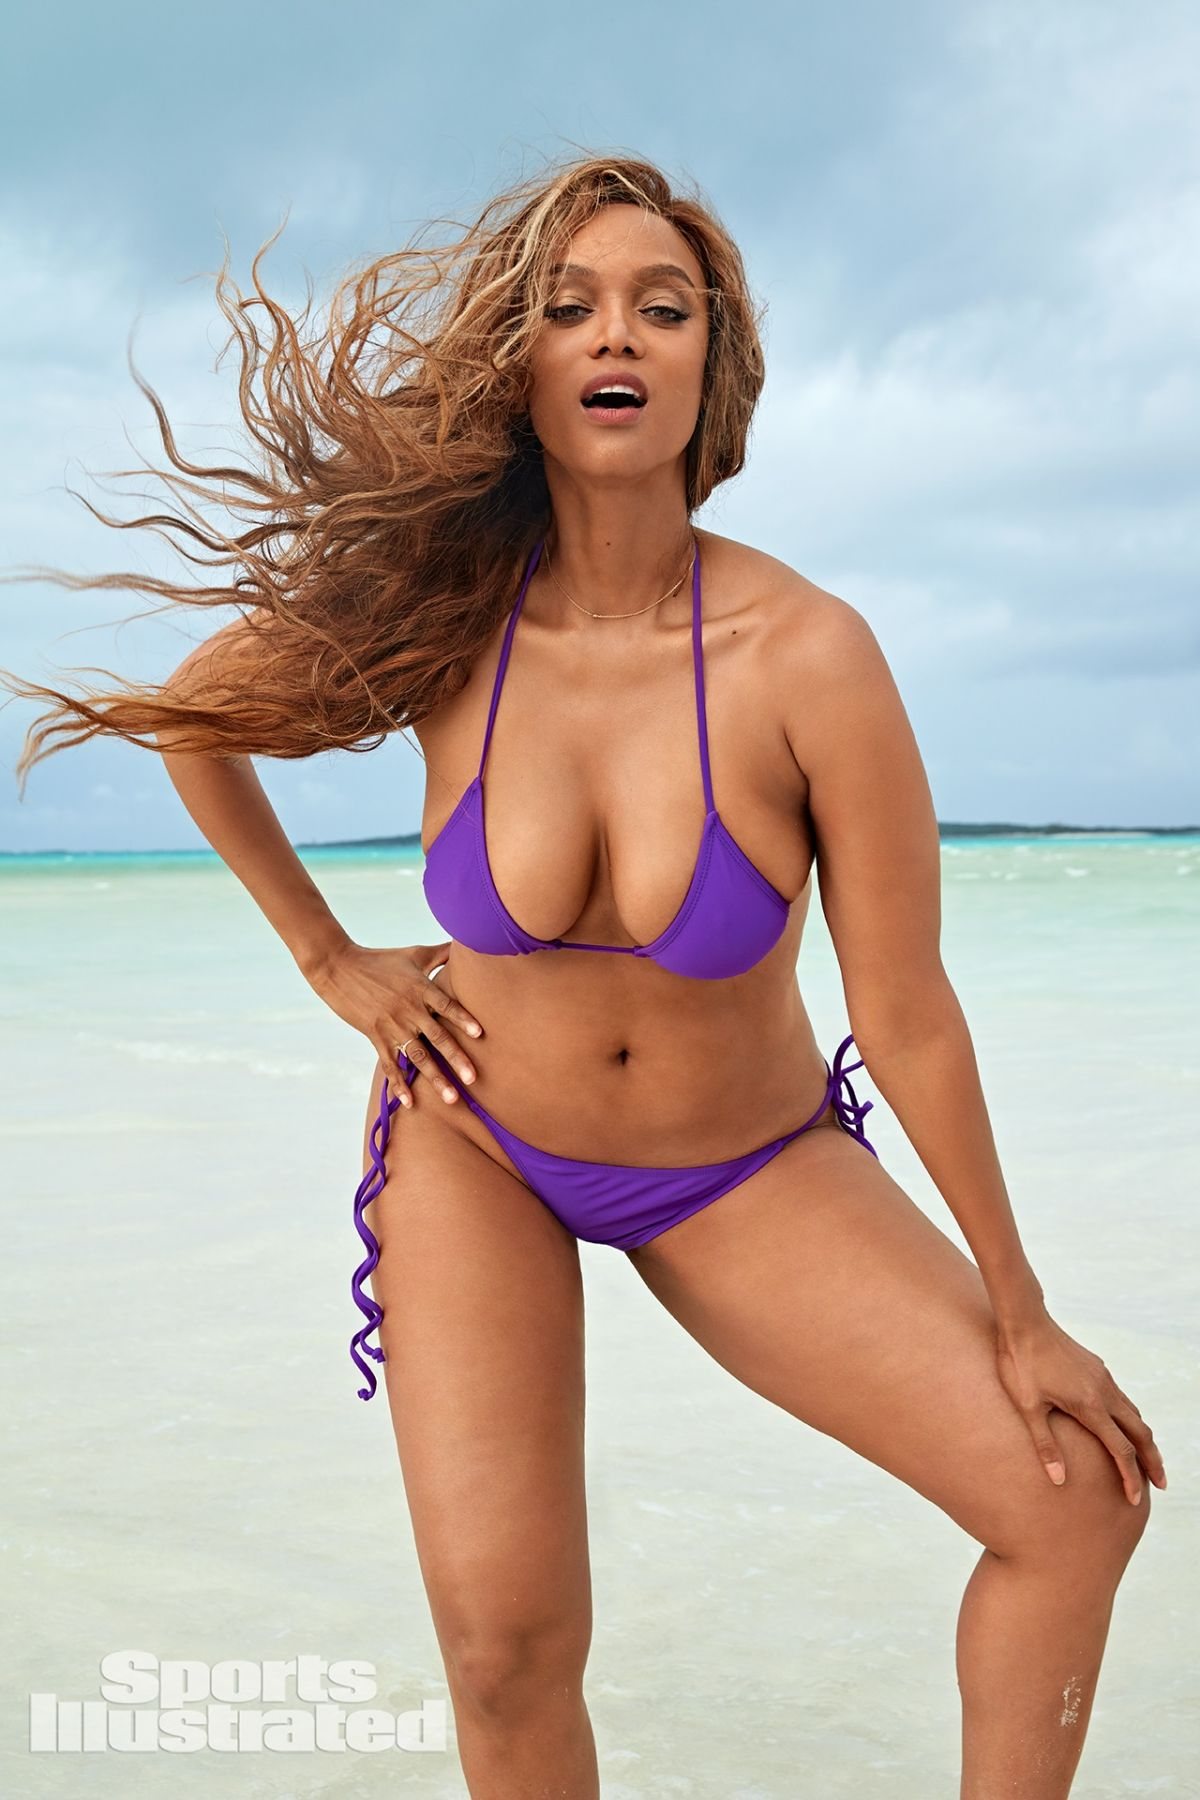 tyra banks sports illustrated new